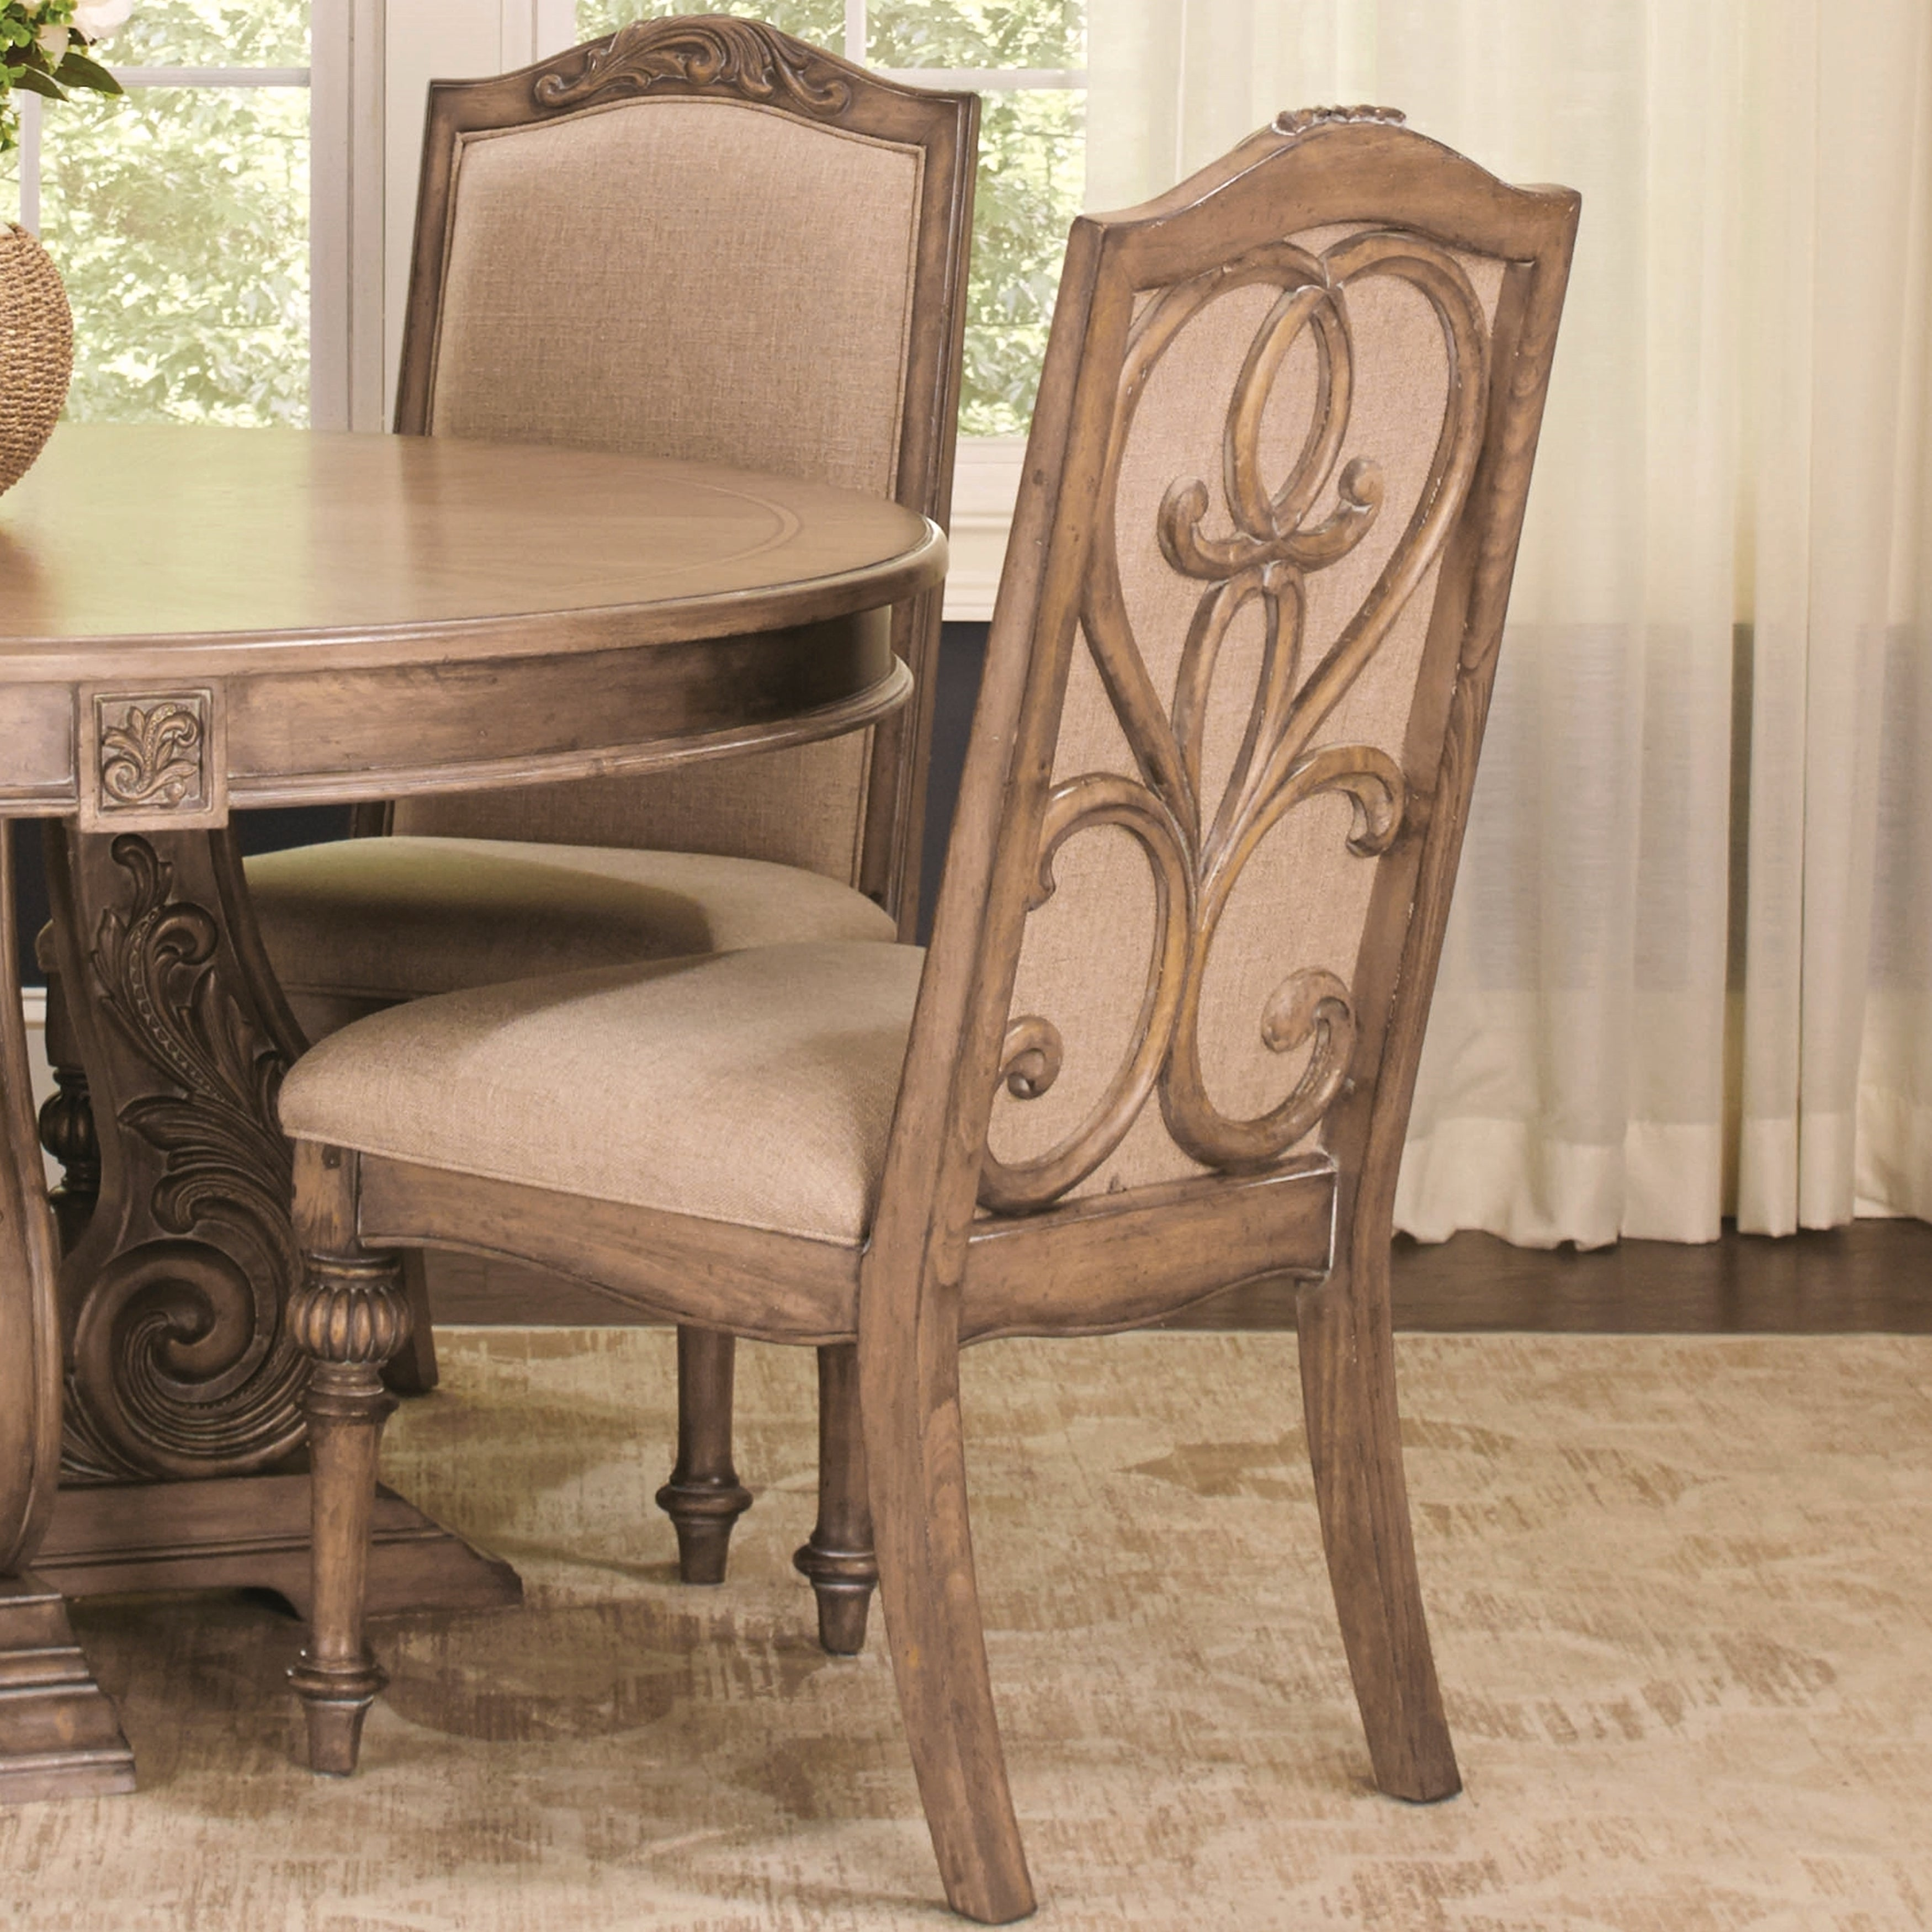 La Bauhinia French Antique Carved Wood Design Dining Chairs Set Of 2